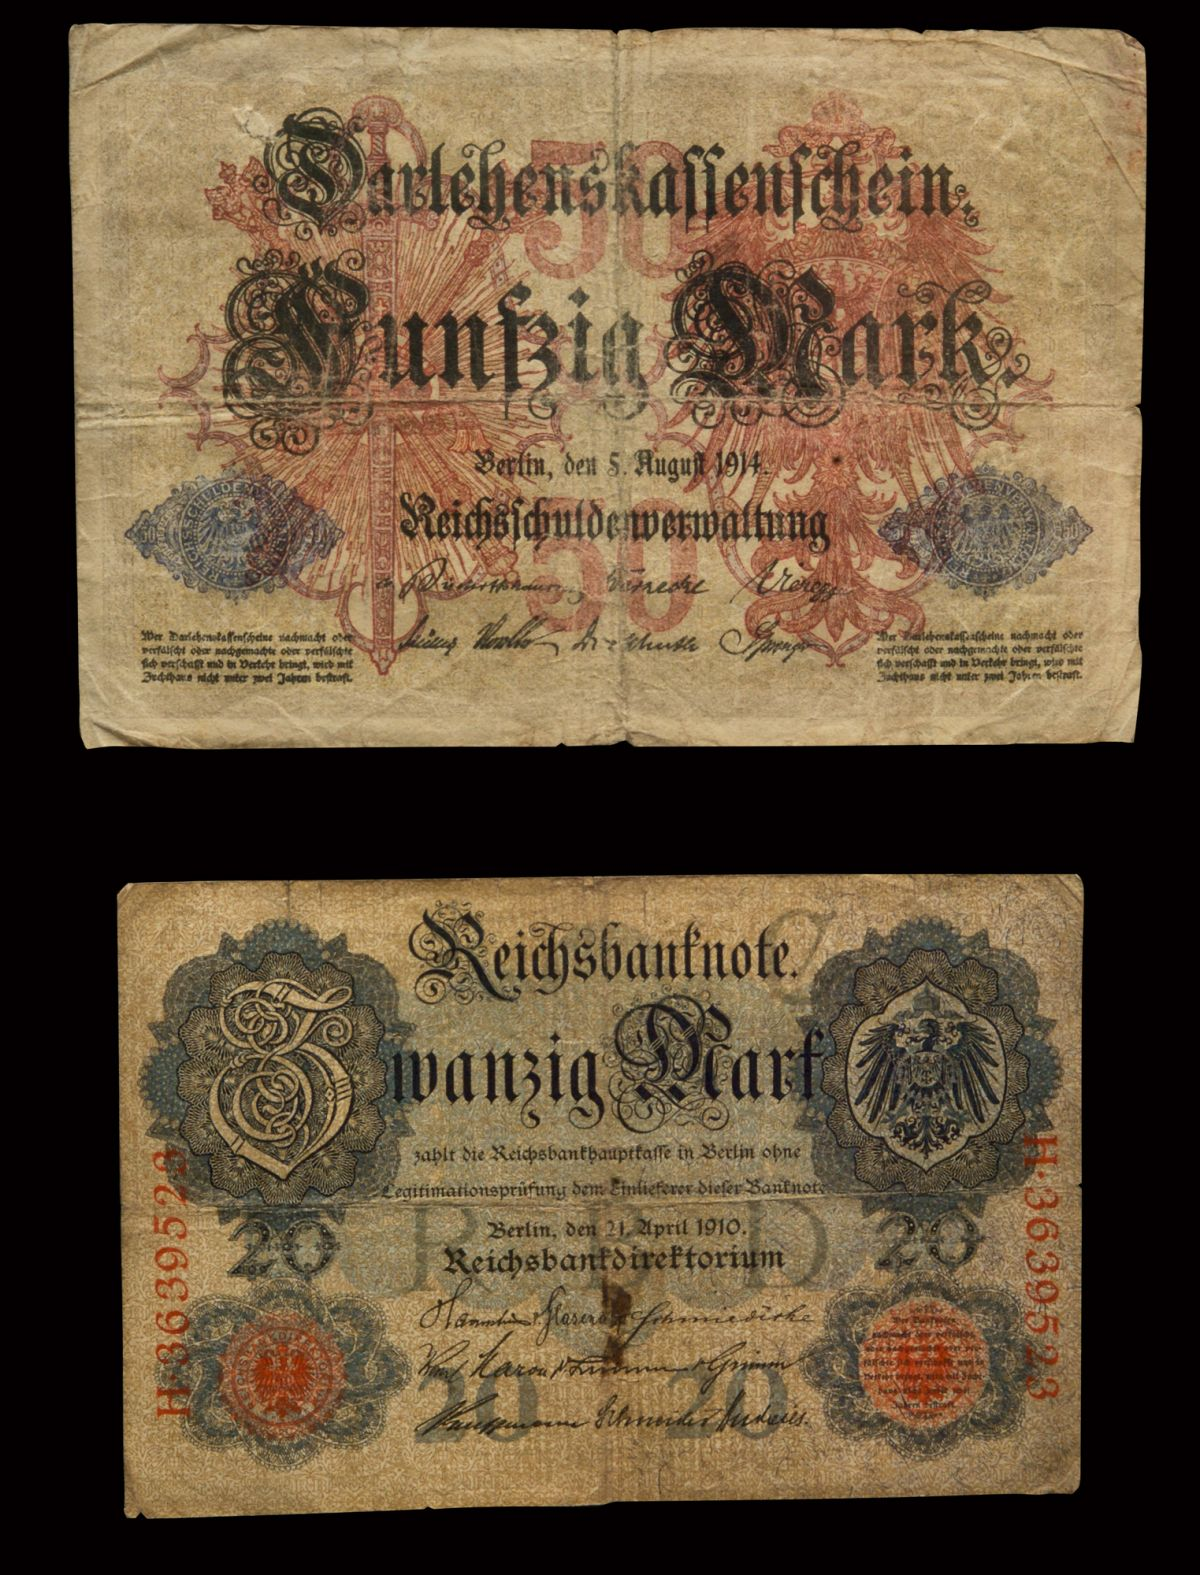 1910 & 1914 WWI GERMAN BANK NOTES IN FRAME